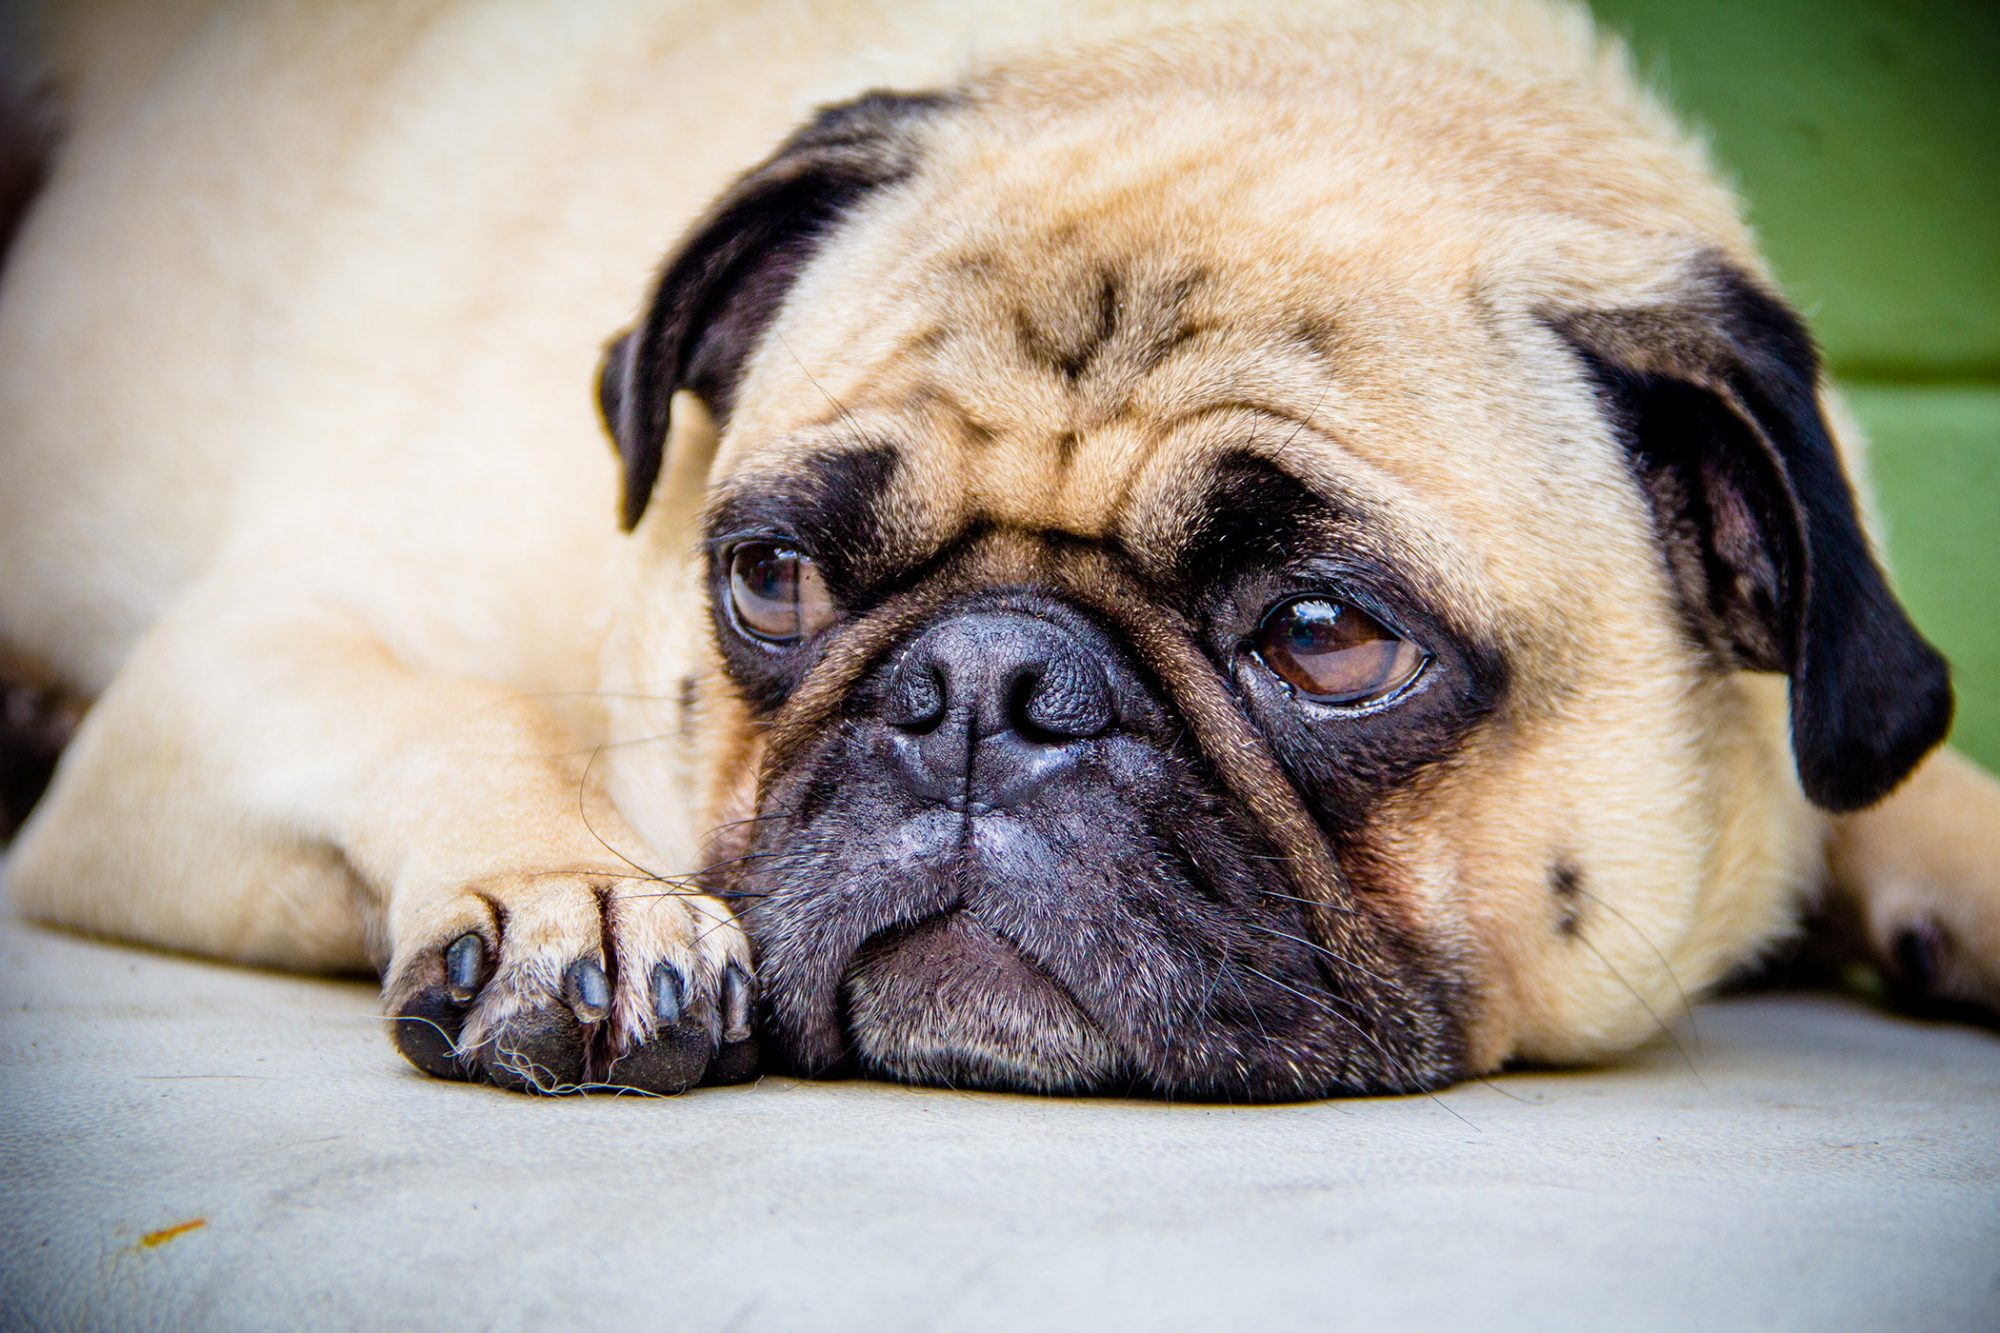 sad looking pug